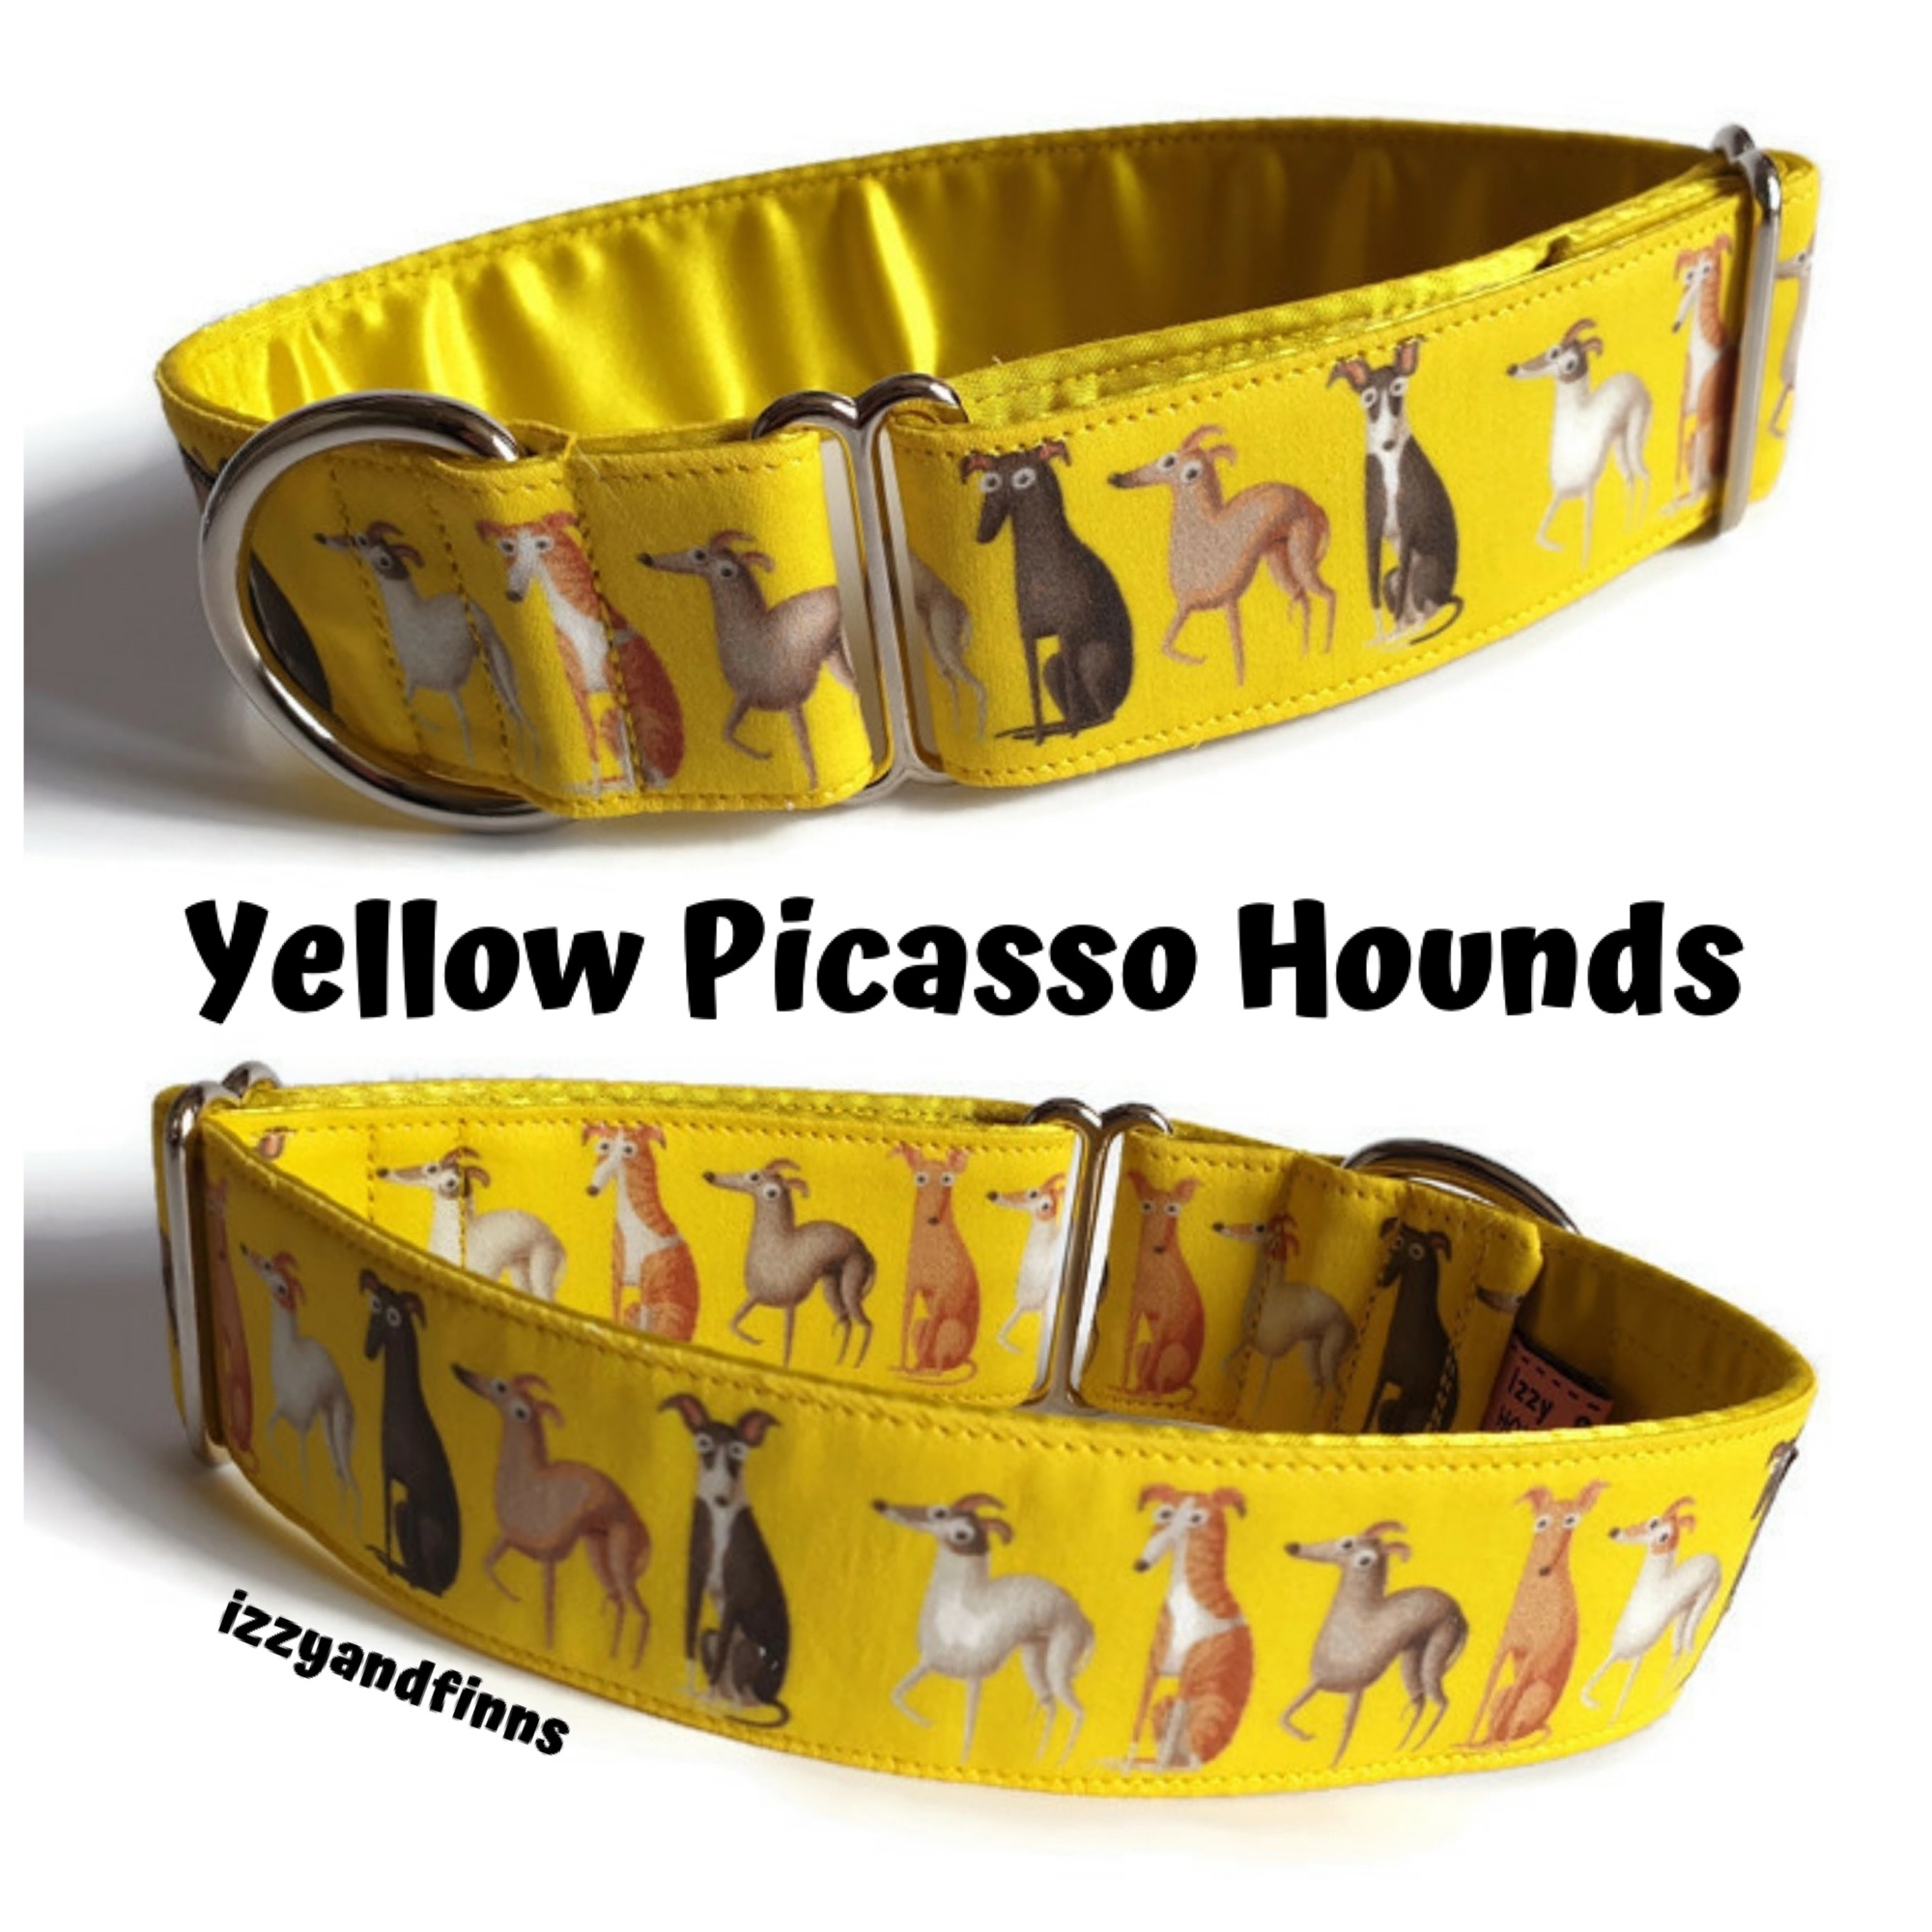 Yellow Picasso Hounds